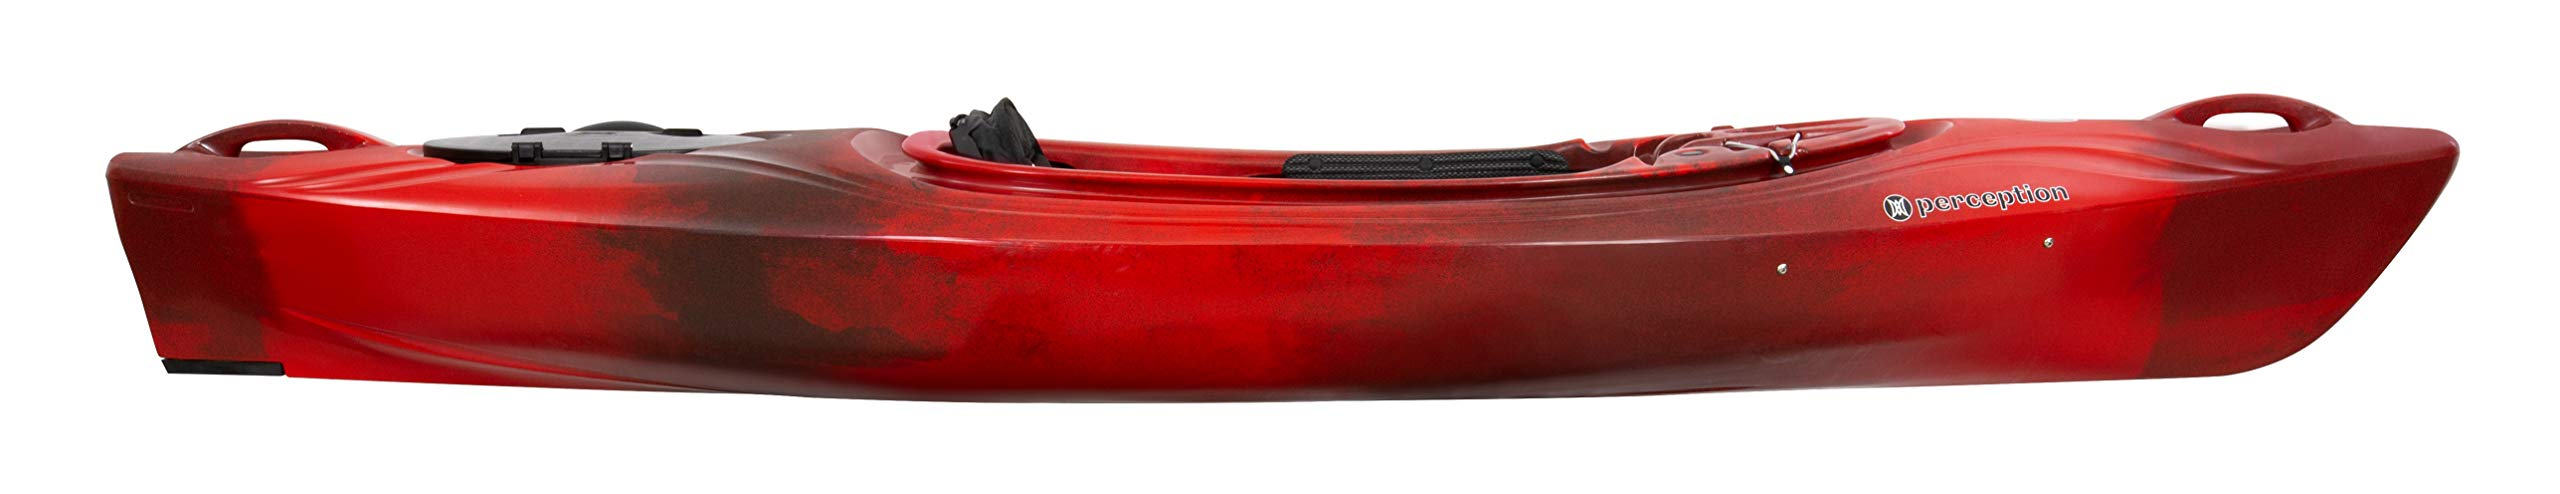 Perception Joyride 10 | Sit Inside Kayak for Adults and Kids | Recreational and Multi-Water Kayak with Selfie Slot | 10' | Red Tiger by Perception Kayaks